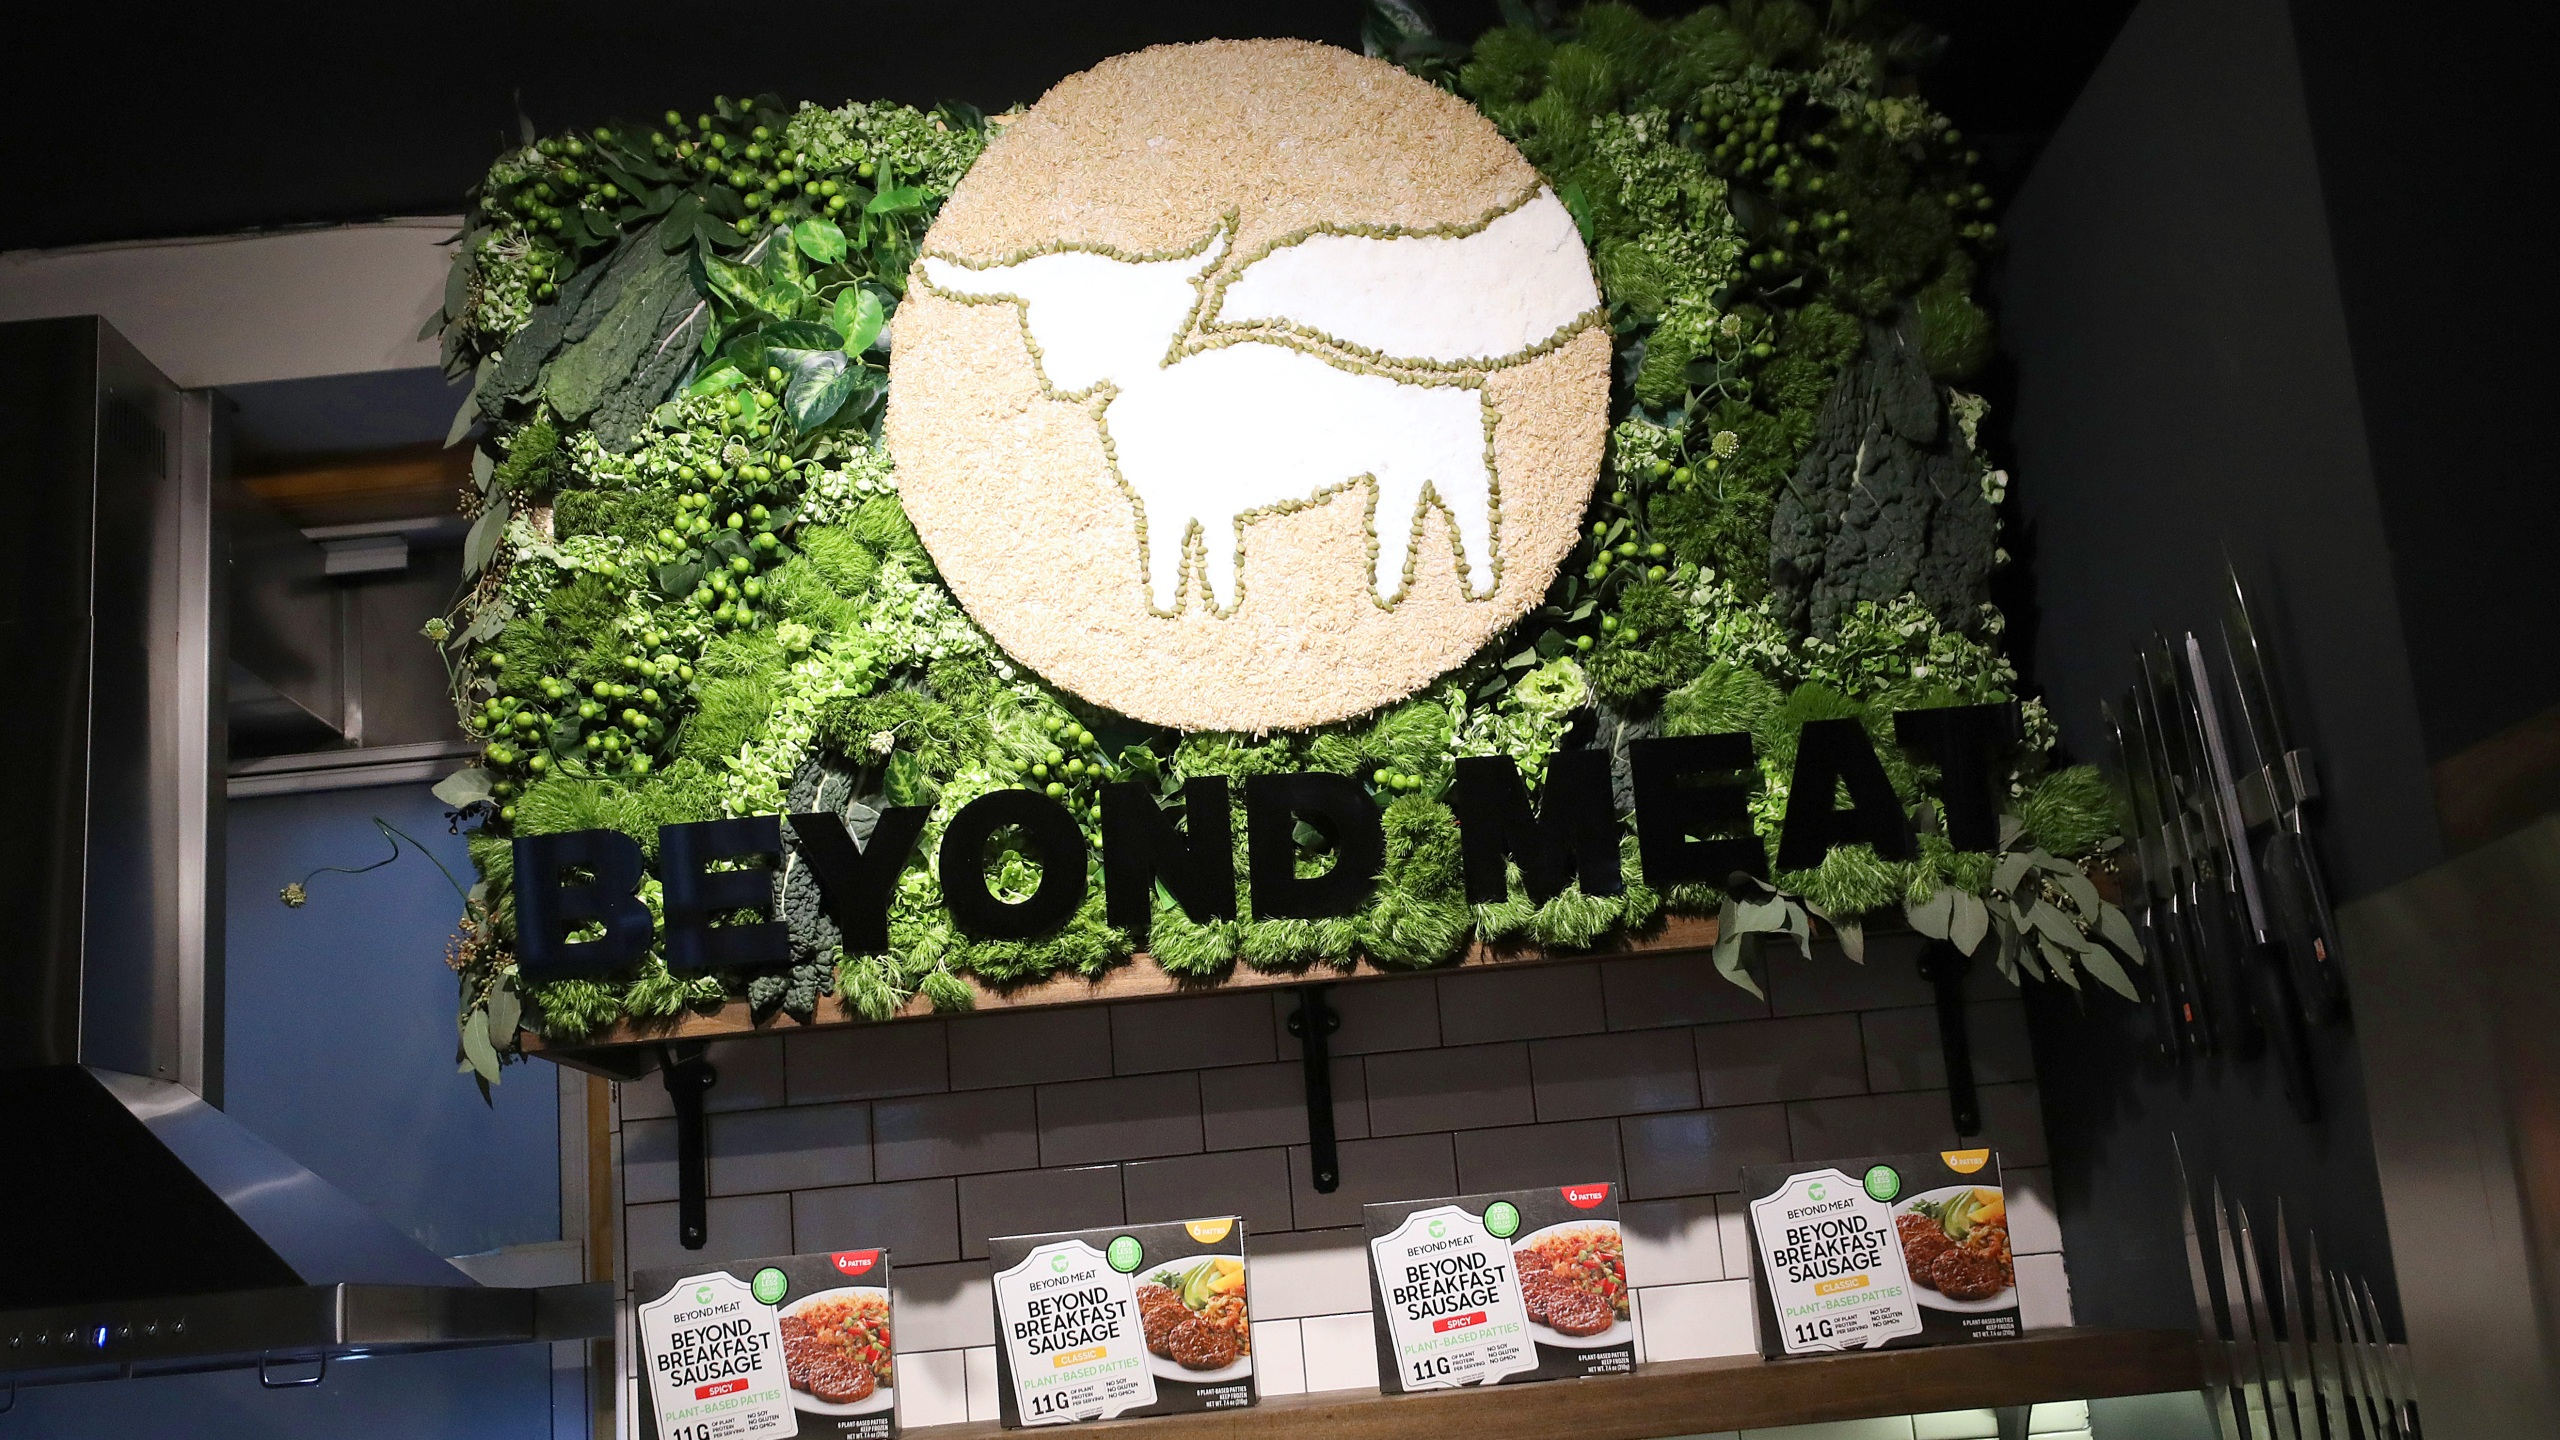 Beyond Meat celebrates the launch of its newest retail product Beyond Breakfast Sausage in New York City on March 10, 2020. (Cindy Ord/Getty Images)